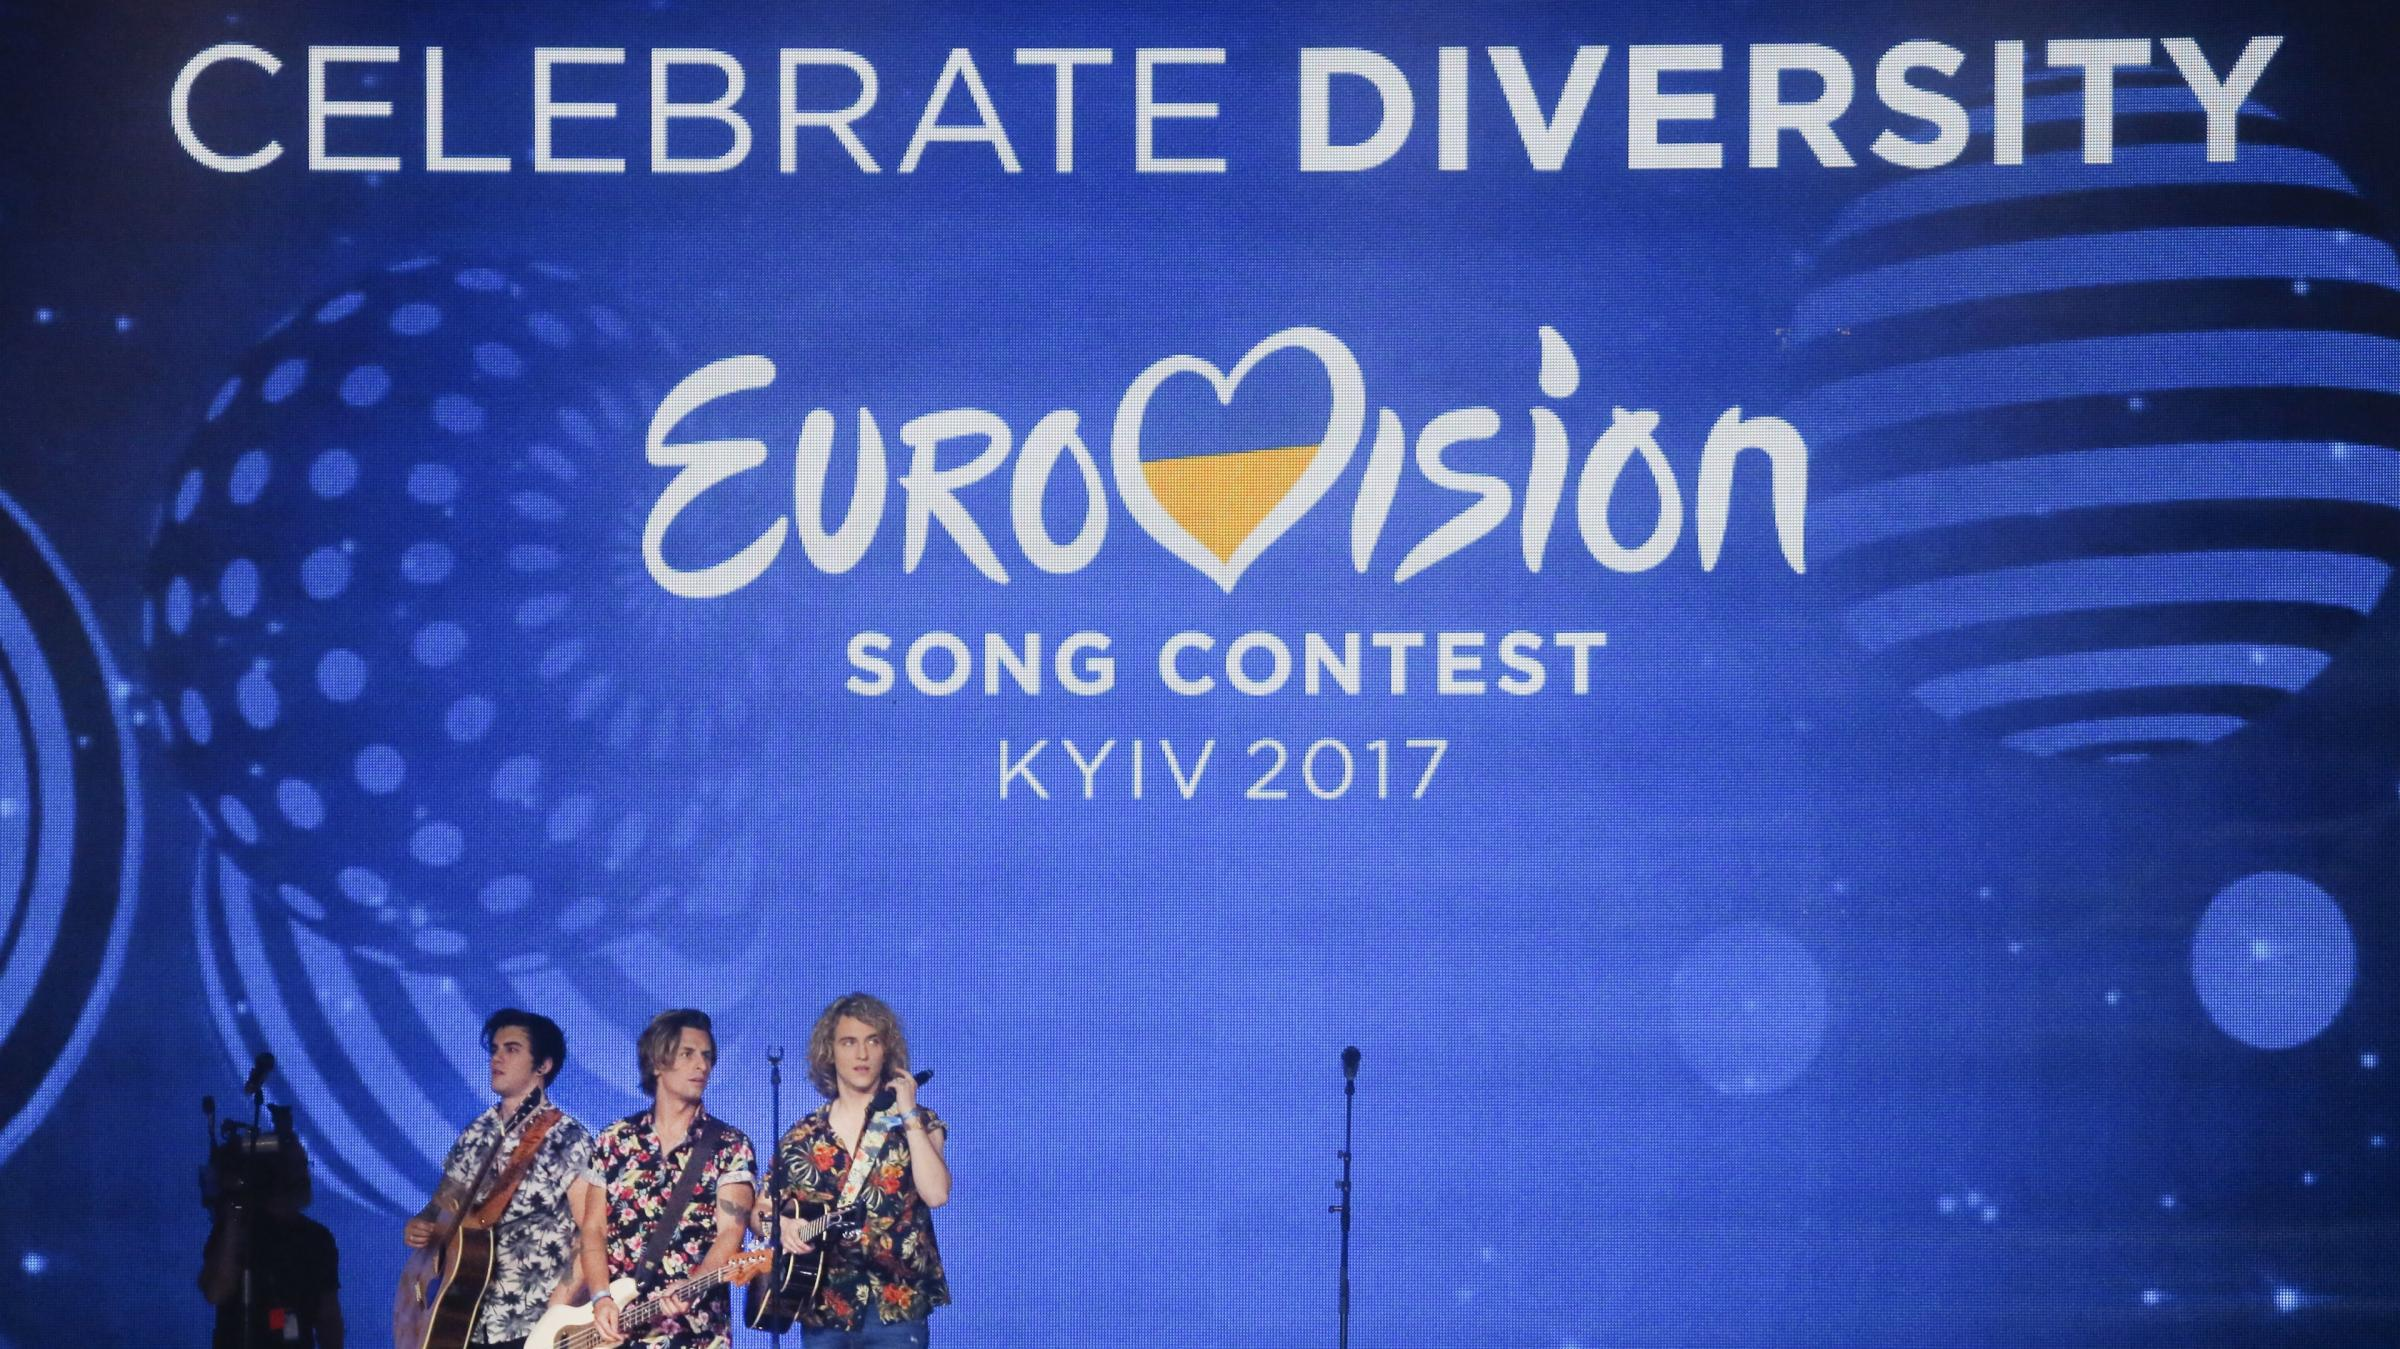 Everything you need to know about the Eurovision Song Contest 2017